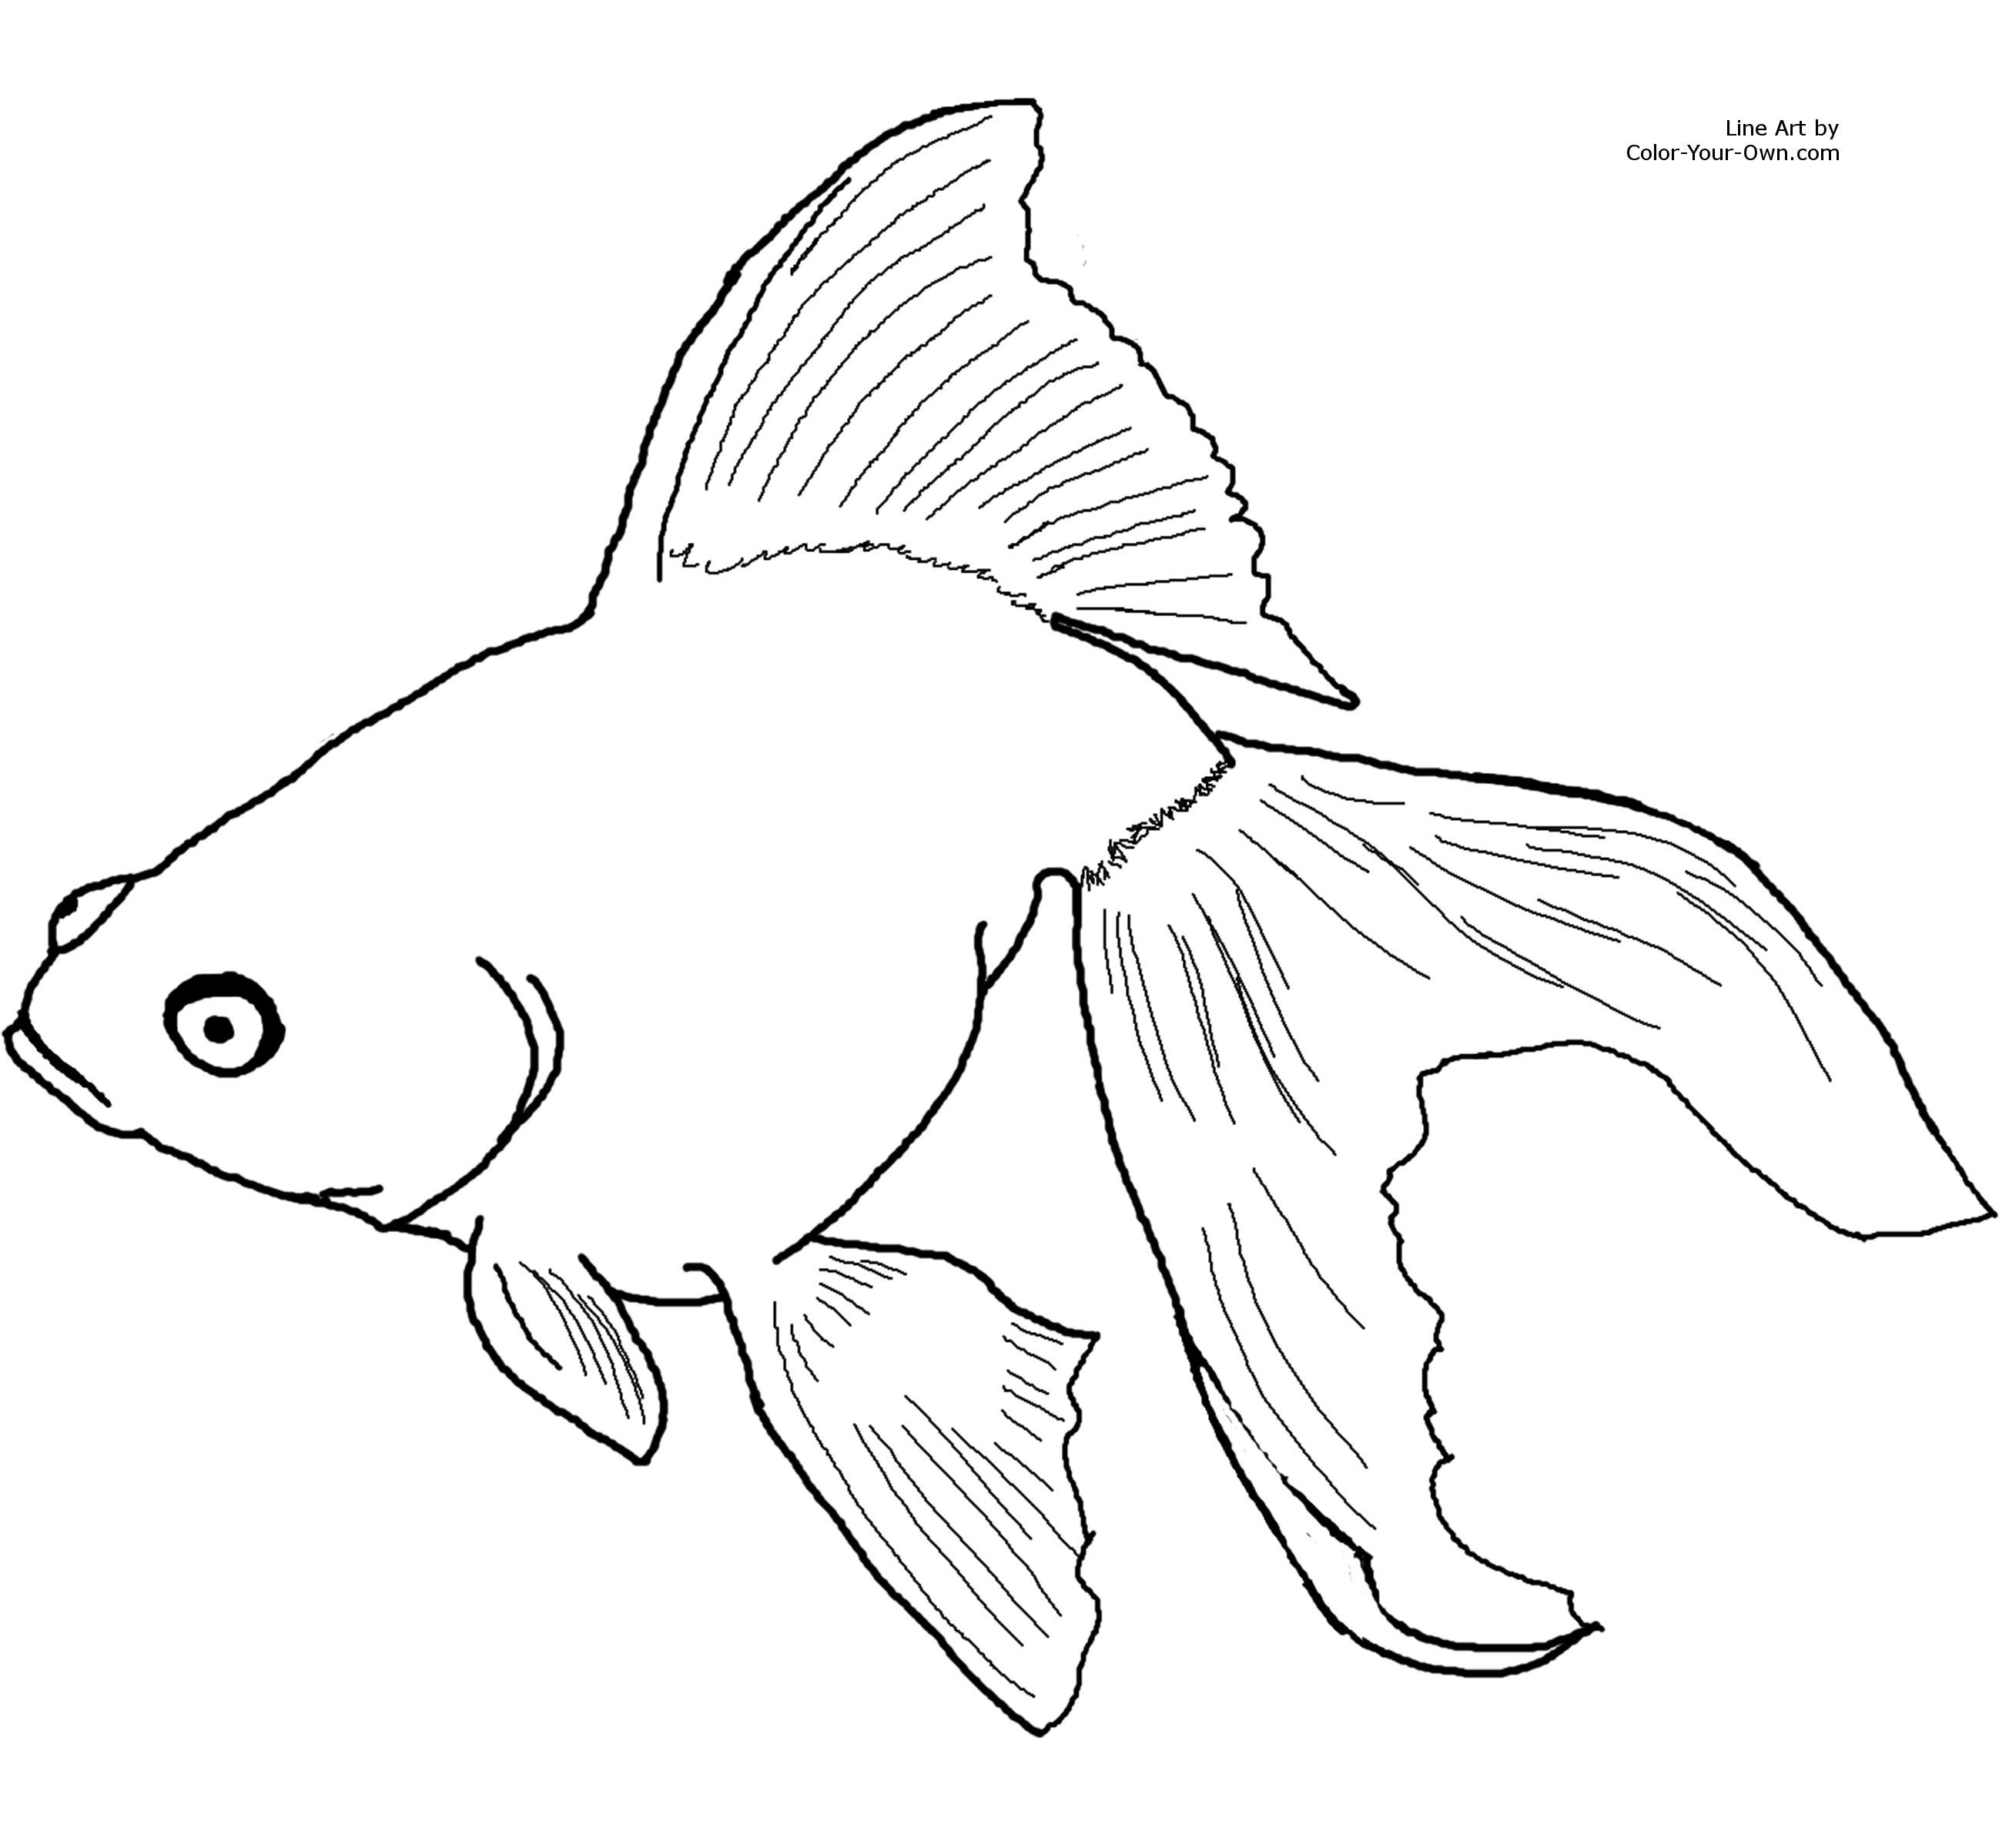 Most Kids Adore Coloring So This Goldfish Coloring